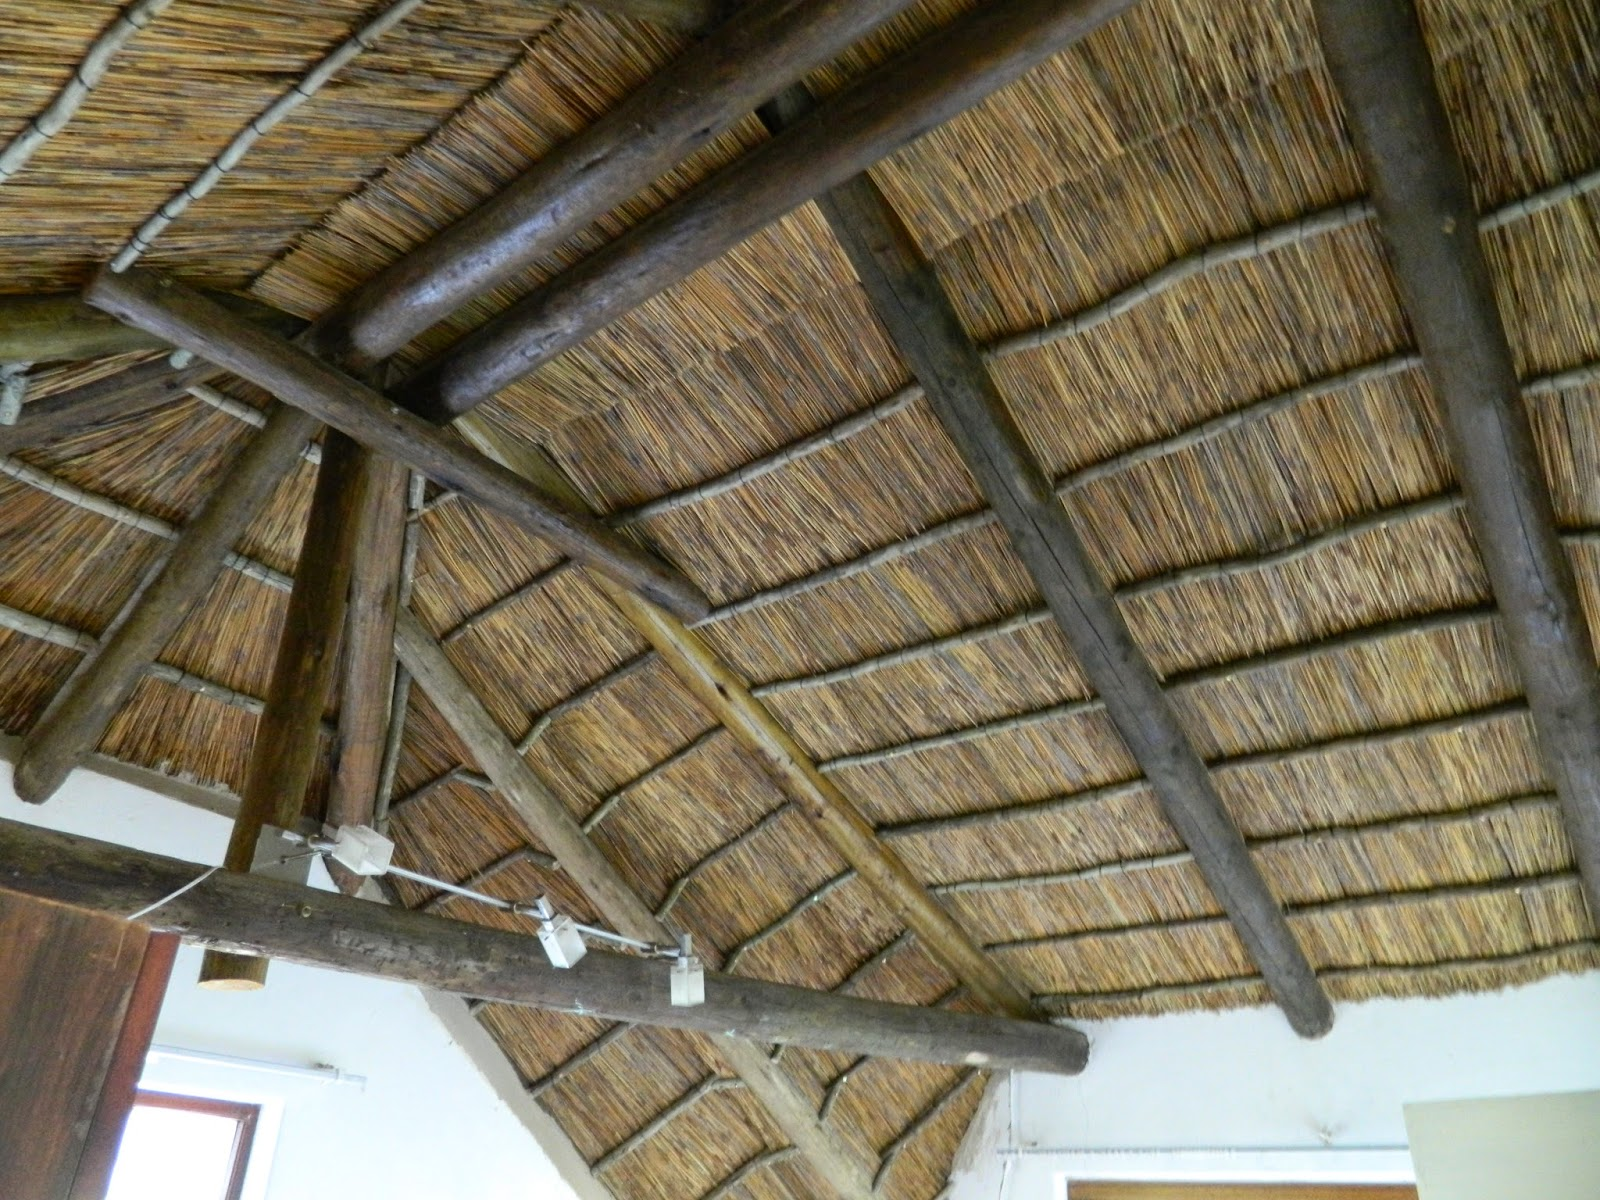 Change a Thatch Roof to Onduvilla Tiles